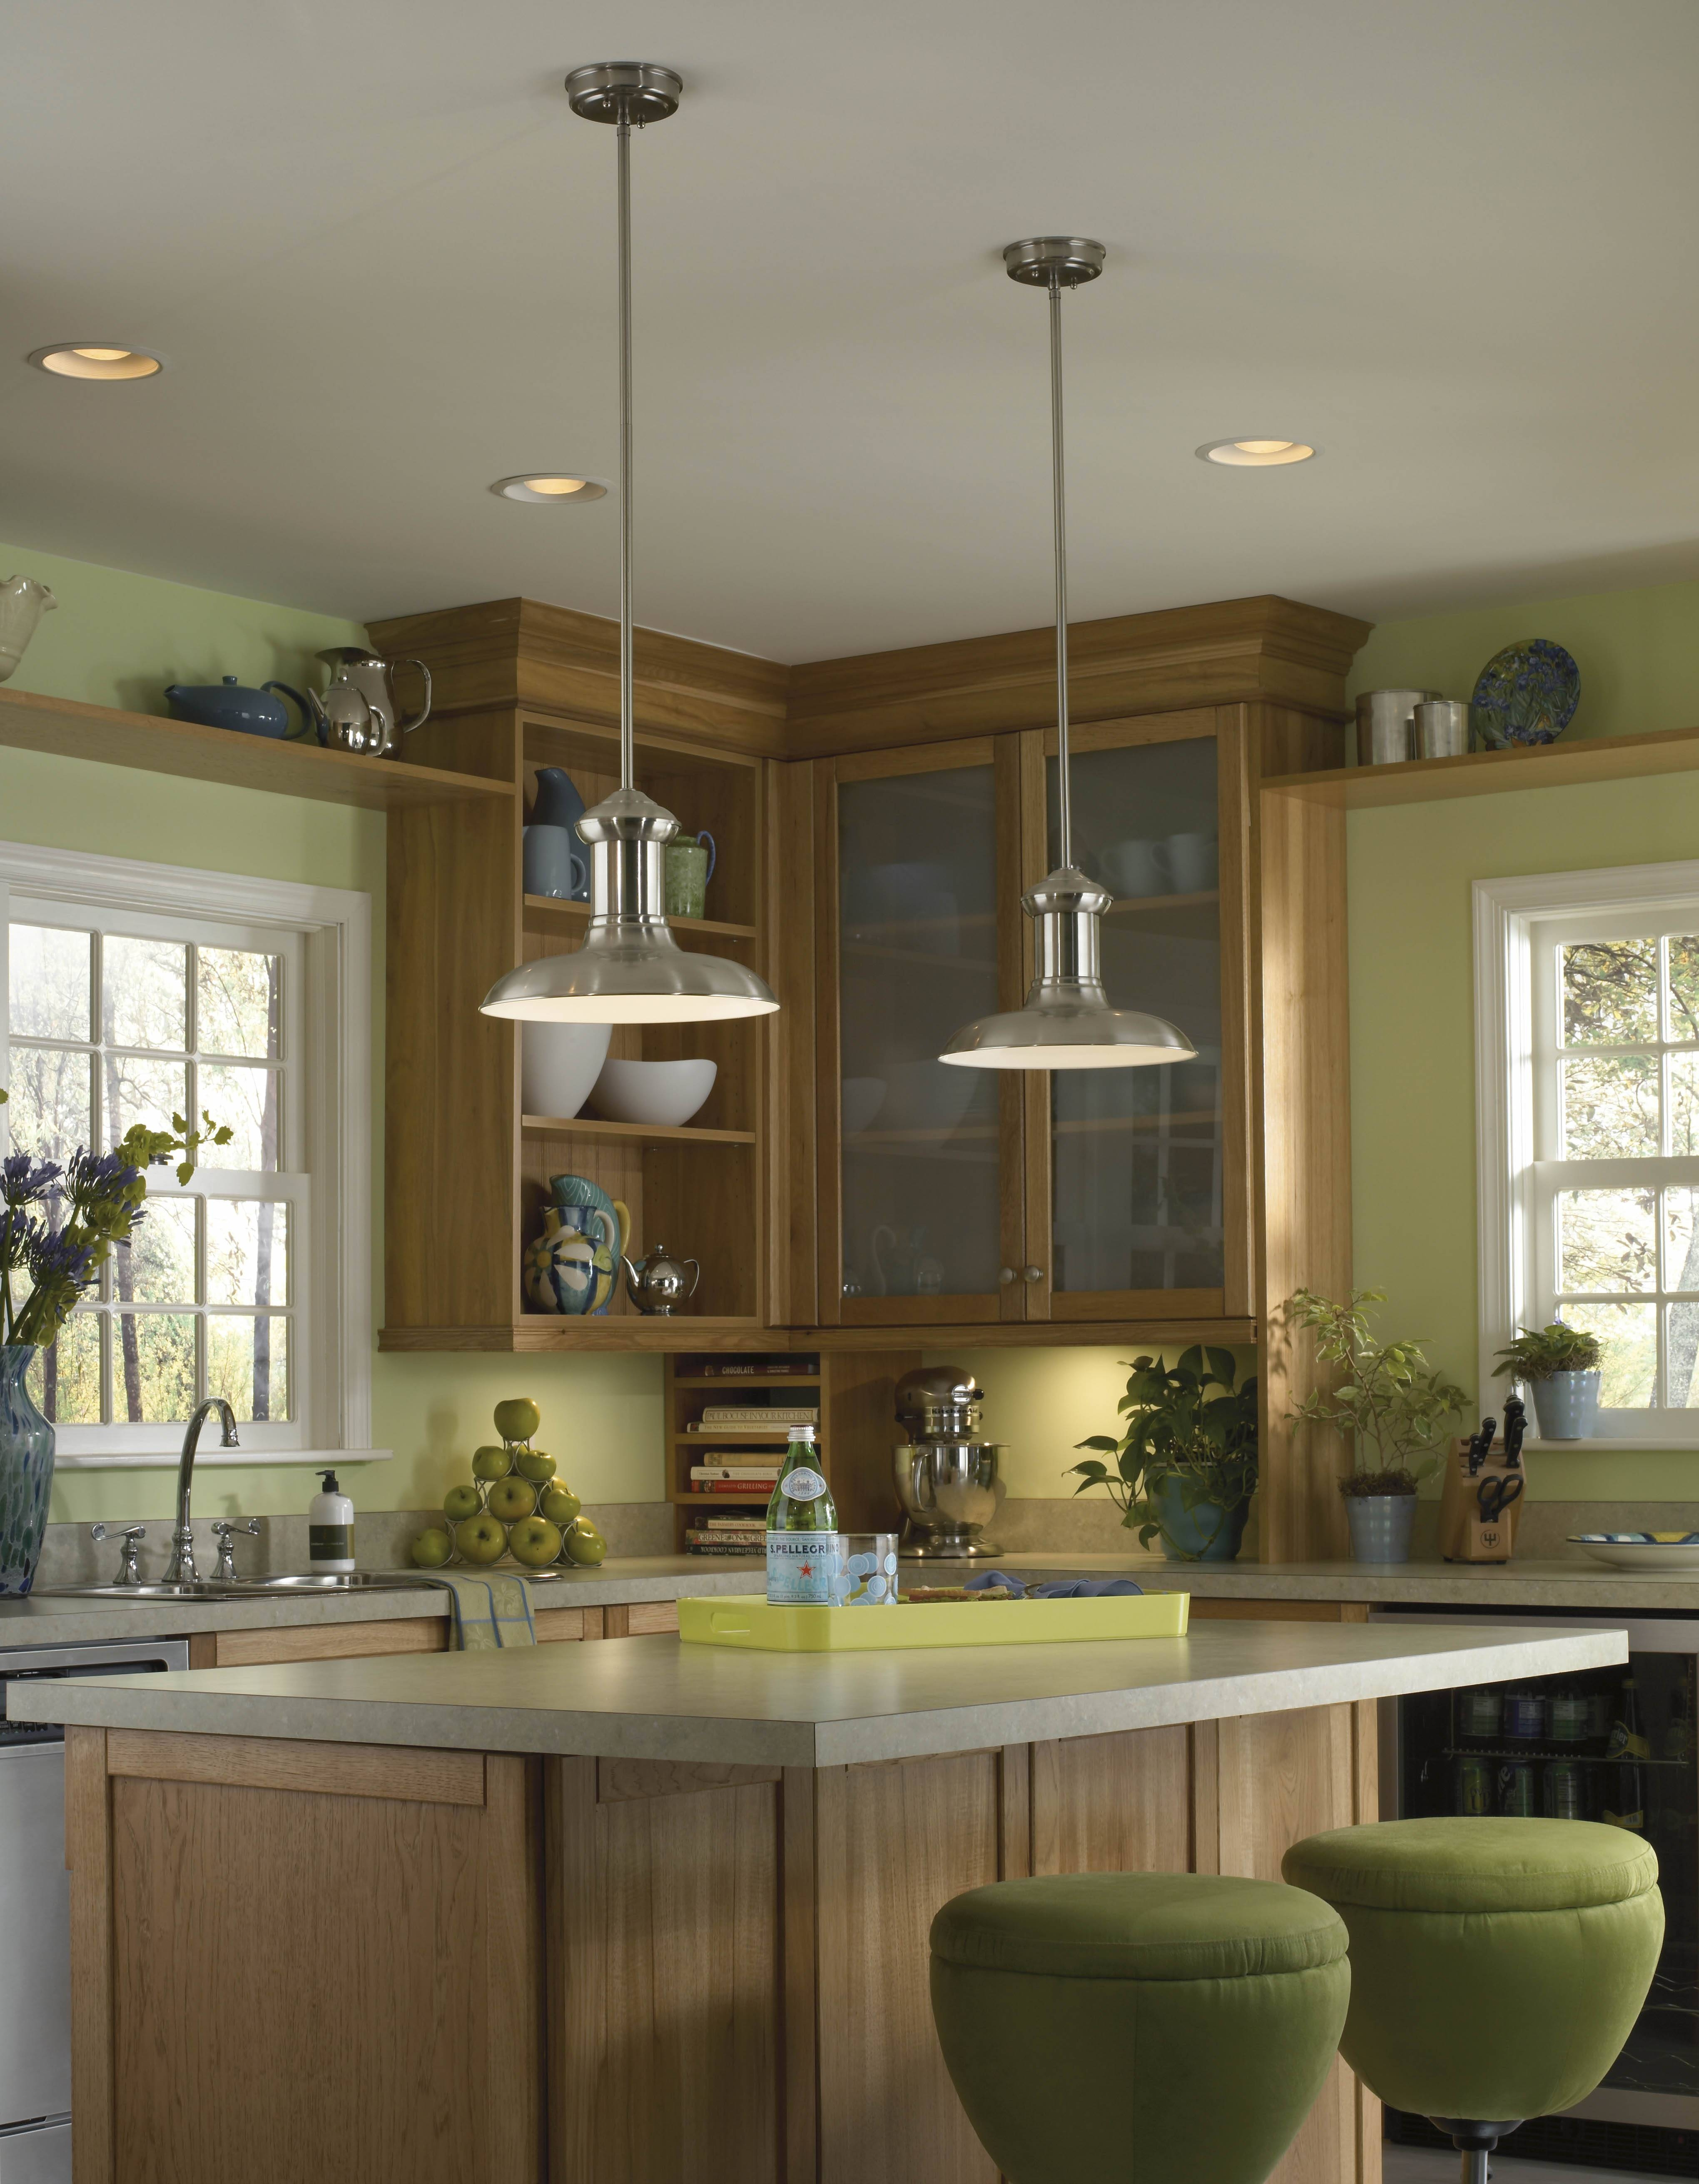 Led Pendant Lights Kitchen Set | The Latest Information Home Pertaining To Pendant Lights In Kitchen (View 11 of 15)